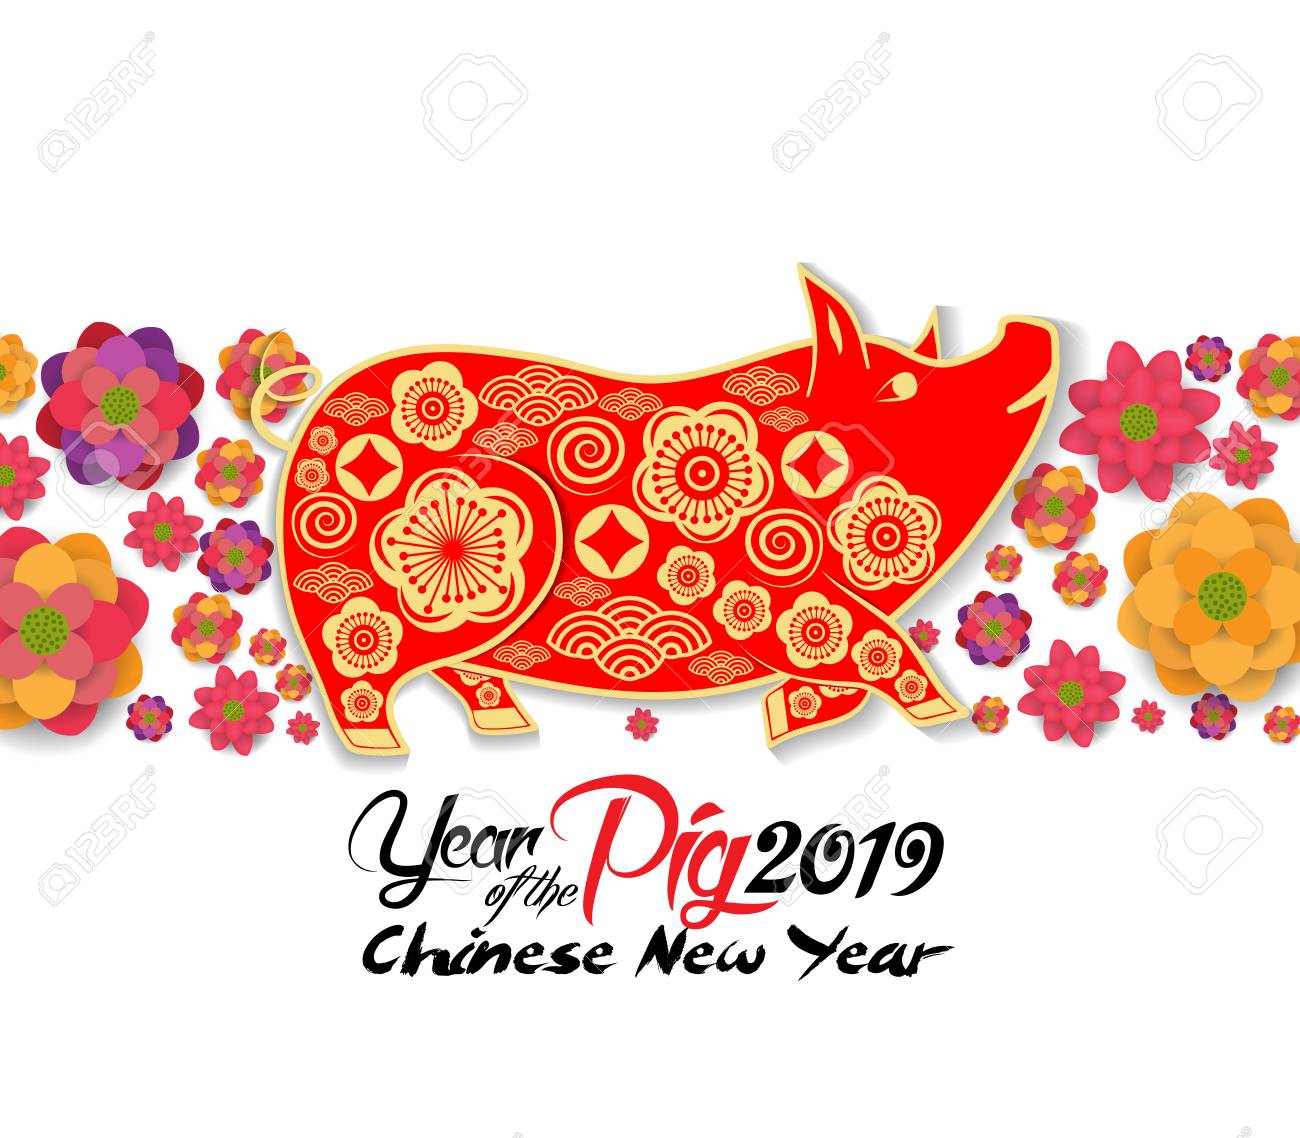 2019-chinese-new-year-greeting-card-paper-cut-with-yellow-pig-and-blooming-background-year-of-the-pi.jpg